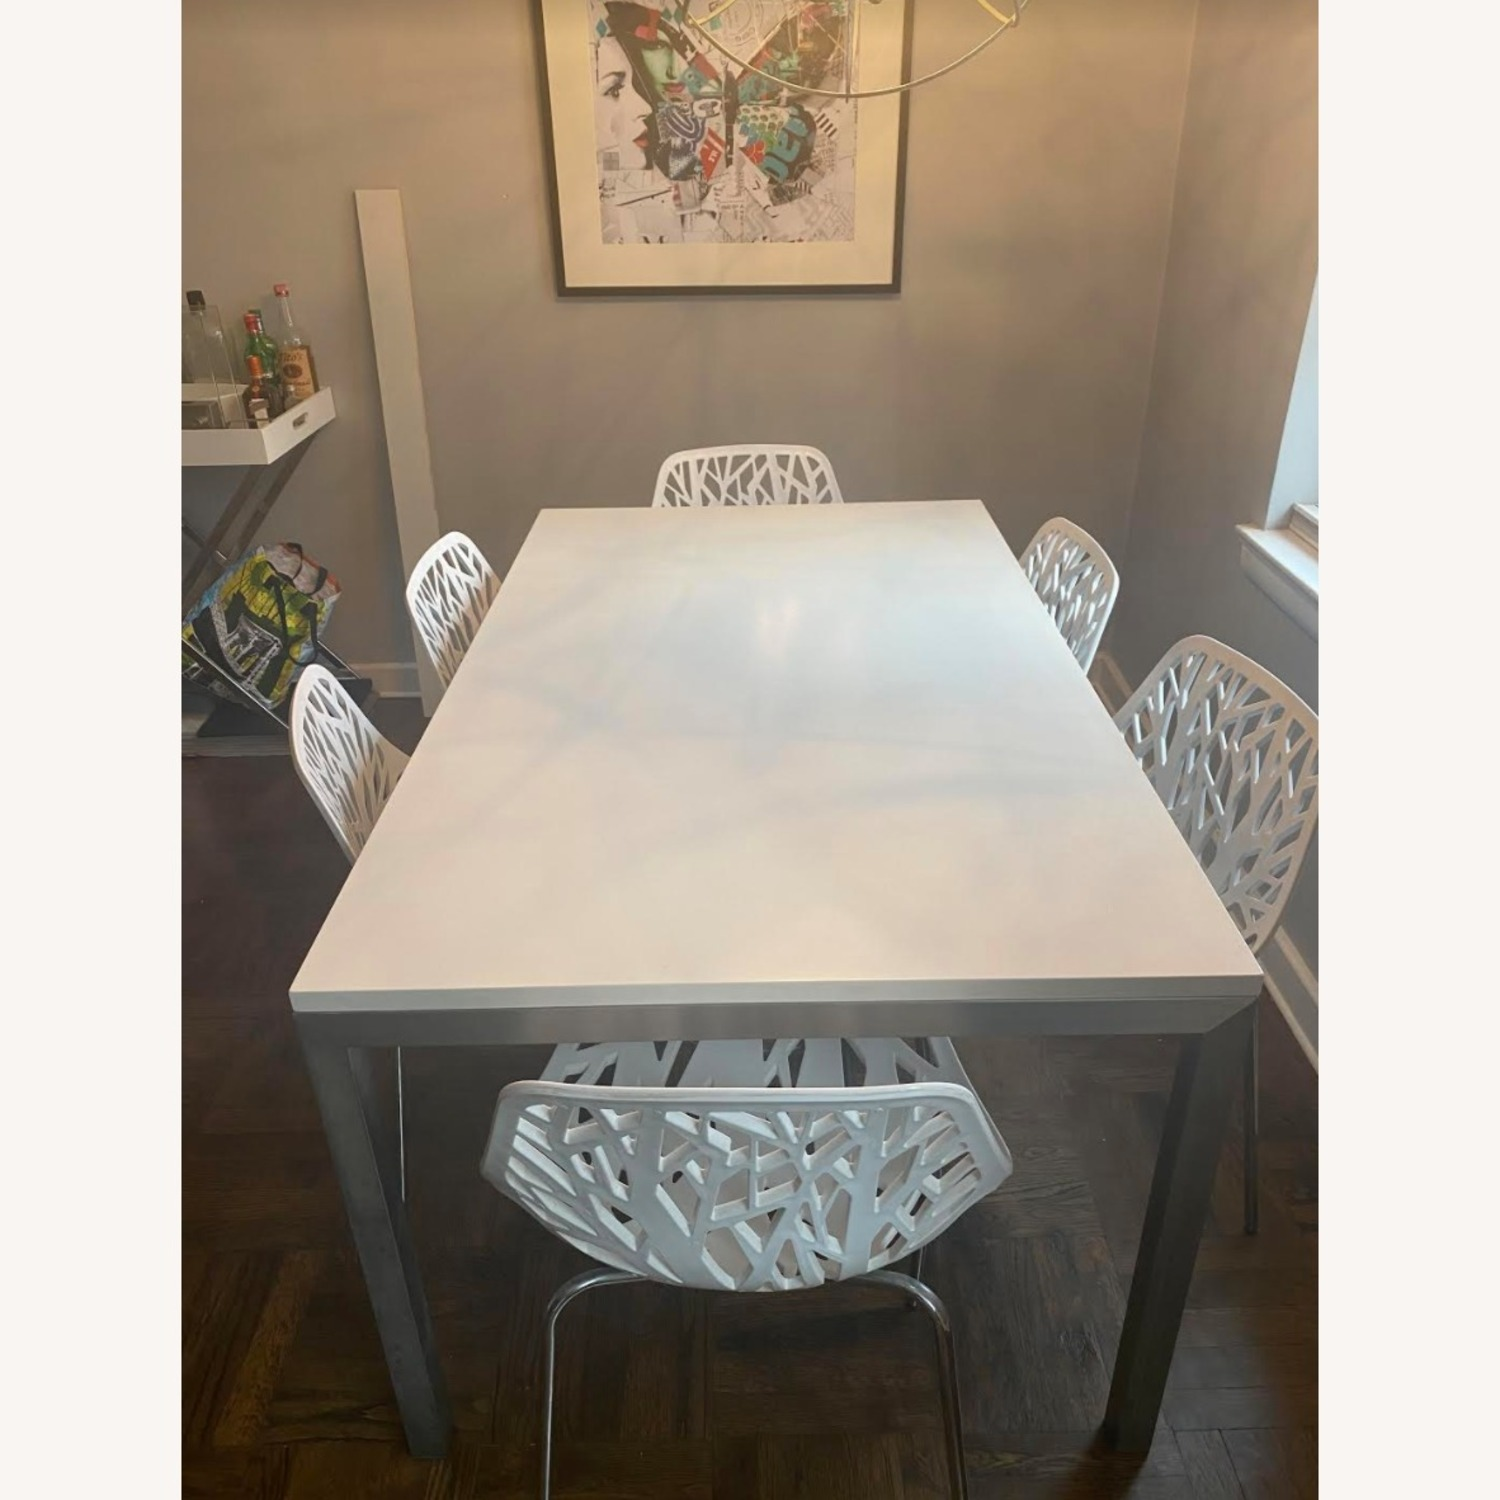 Crate & Barrel Stainless Steel Dining Table - image-1